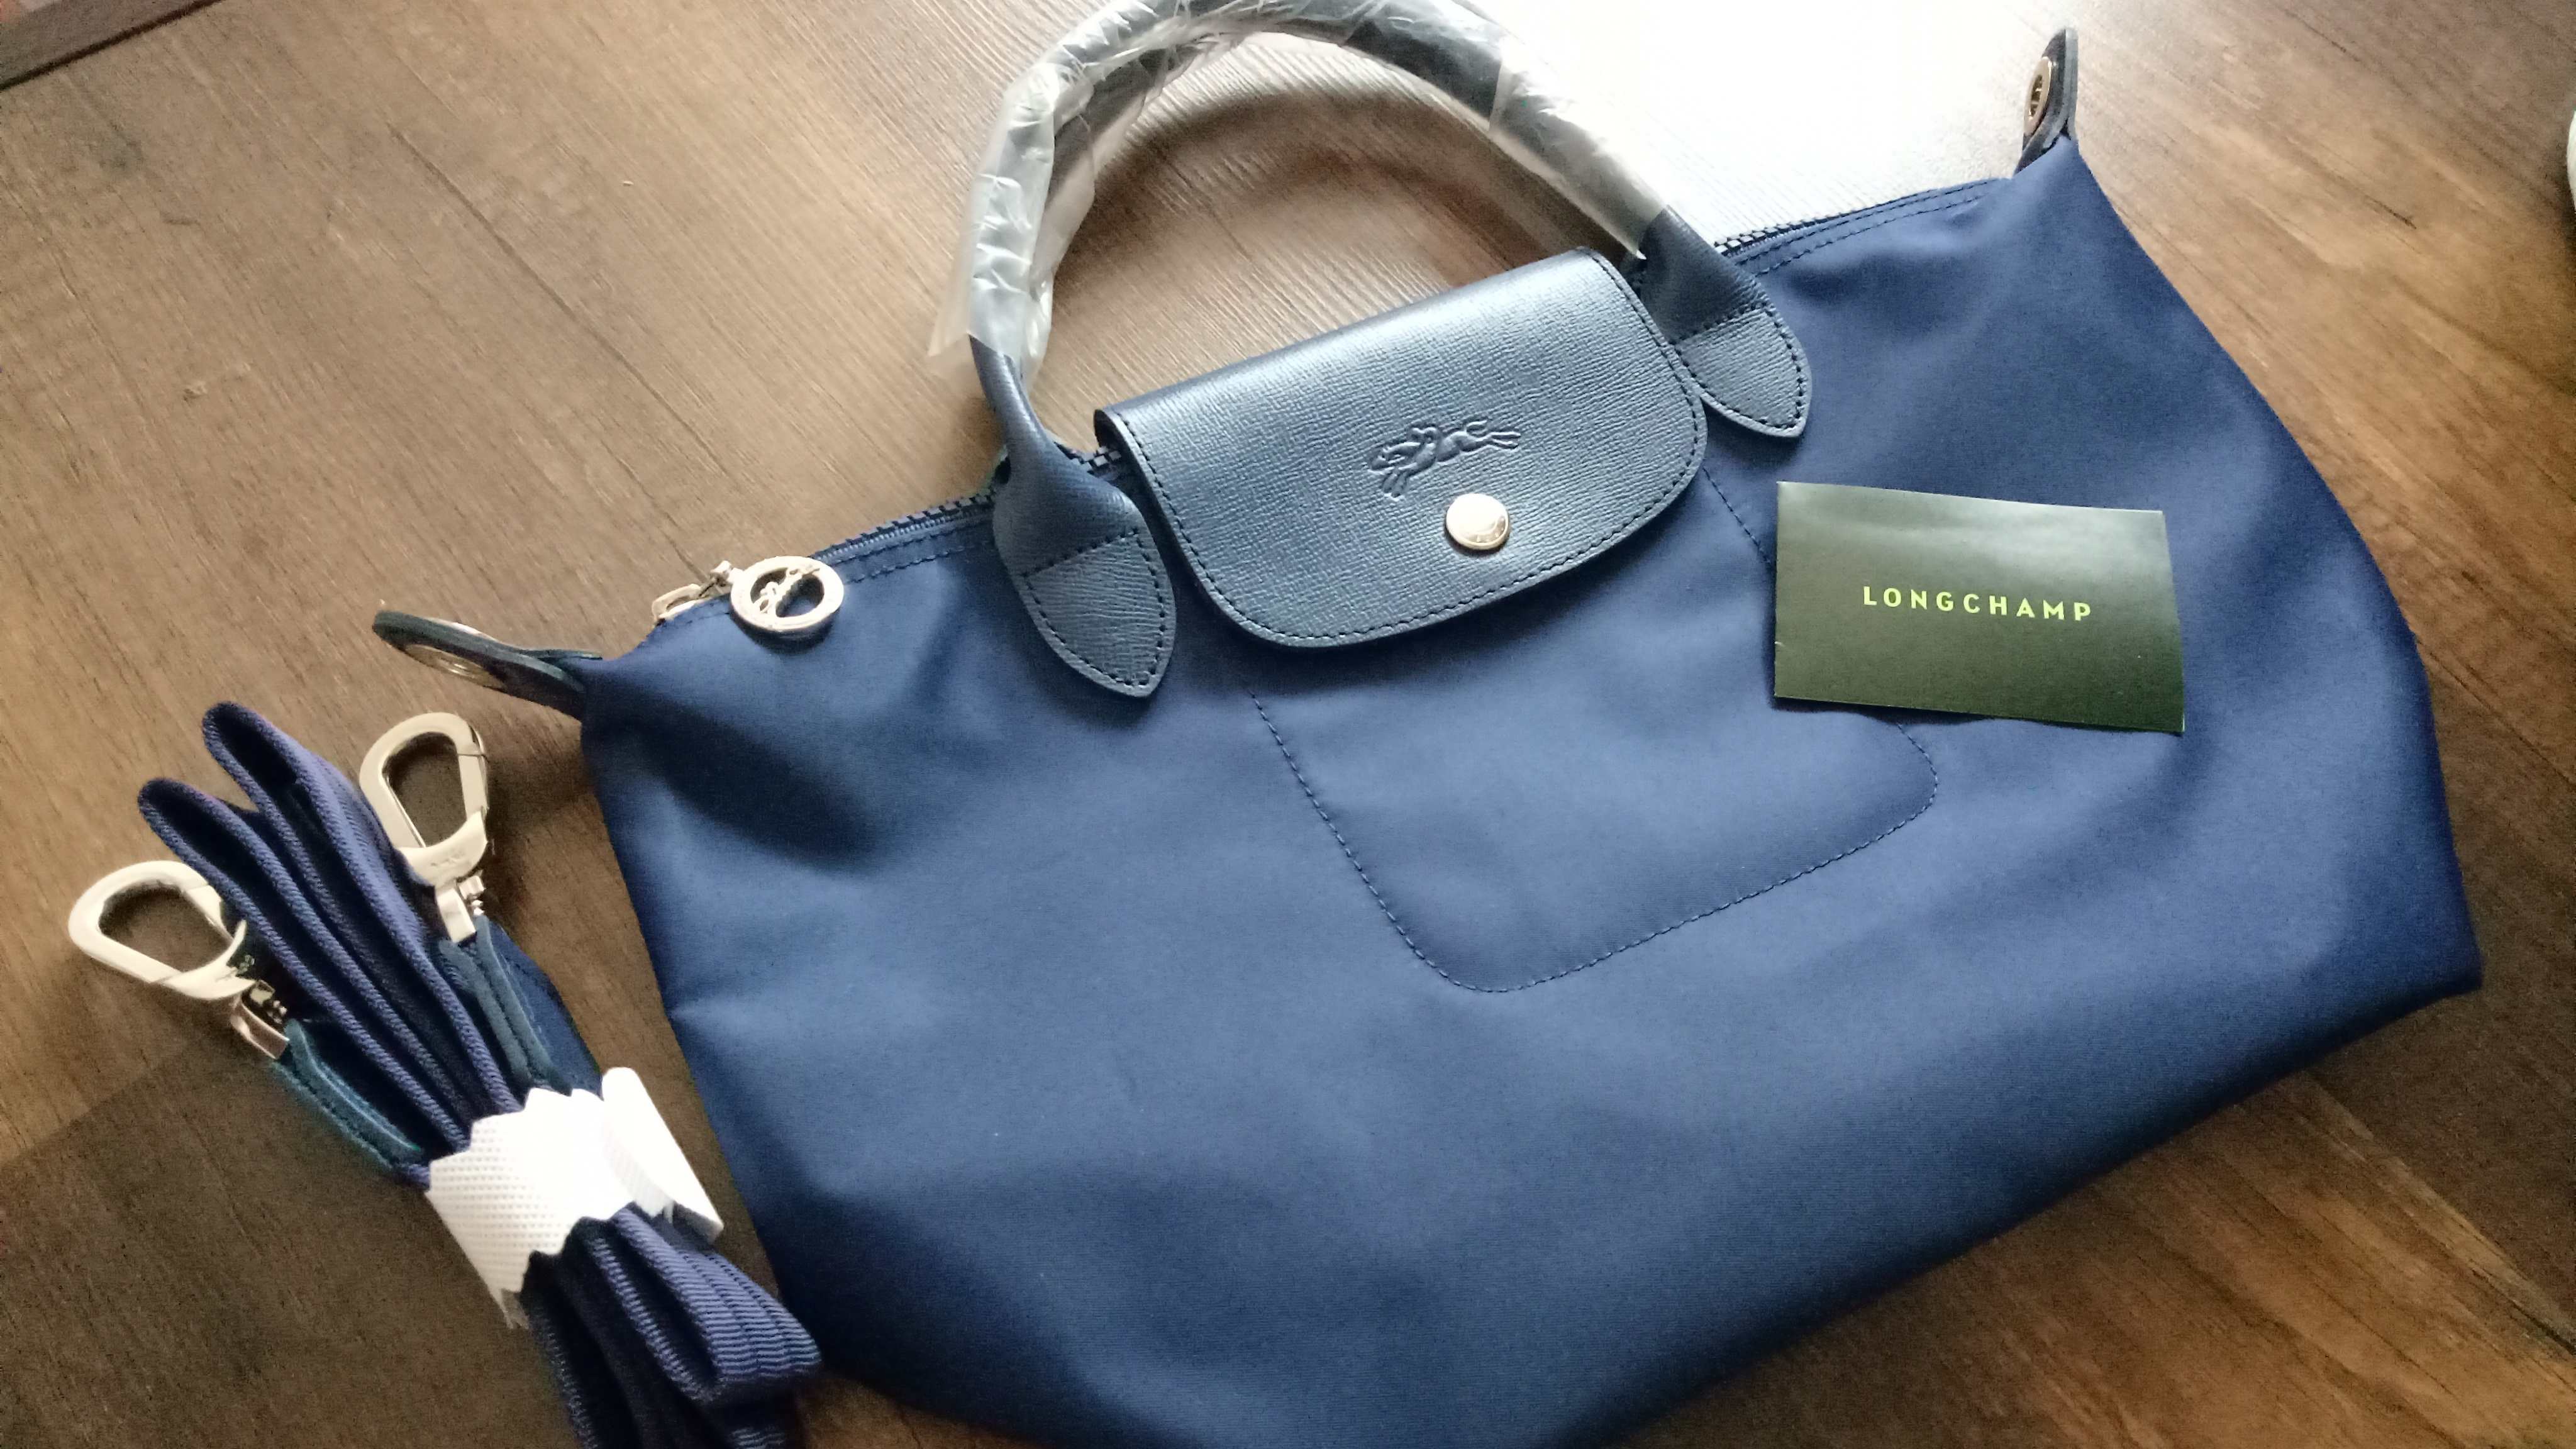 78f122e6cd4 Longchamp Neo Small with strap Measurements : 9.8x9x6.3x14.6x4.7inch  Condition : 10/10 new unused Color/Material : Navy blue New unused. Bag and  carecard ...